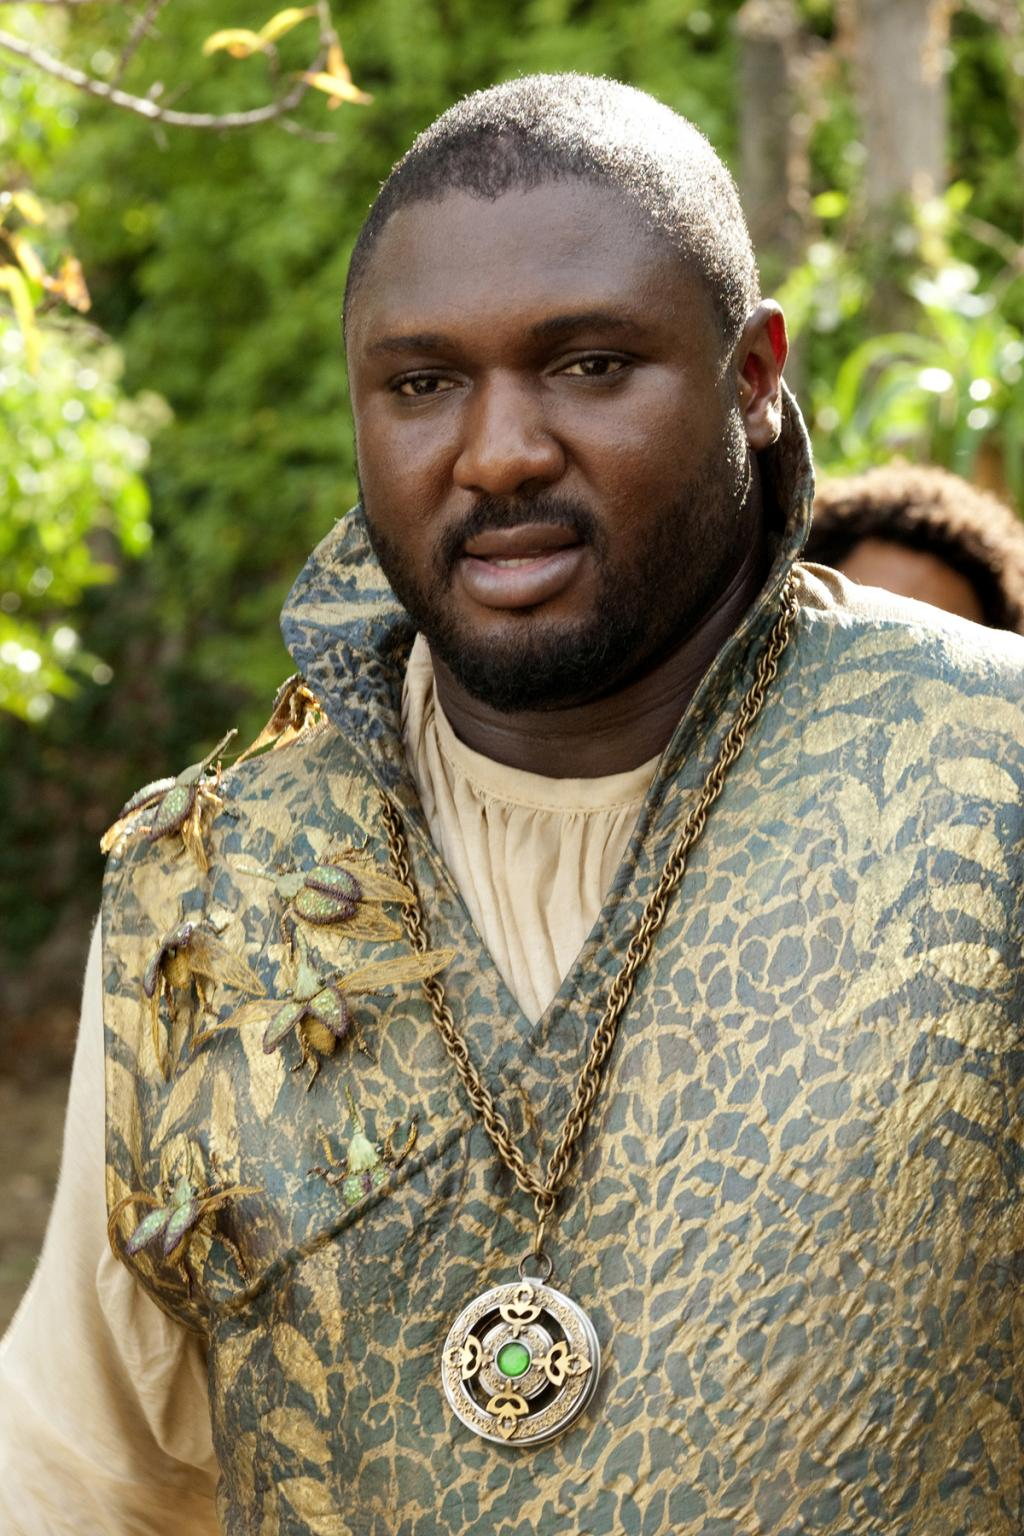 Exclusive Look At Nonso Anozie As Game Of Thrones' Xaro Xhoan Daxos